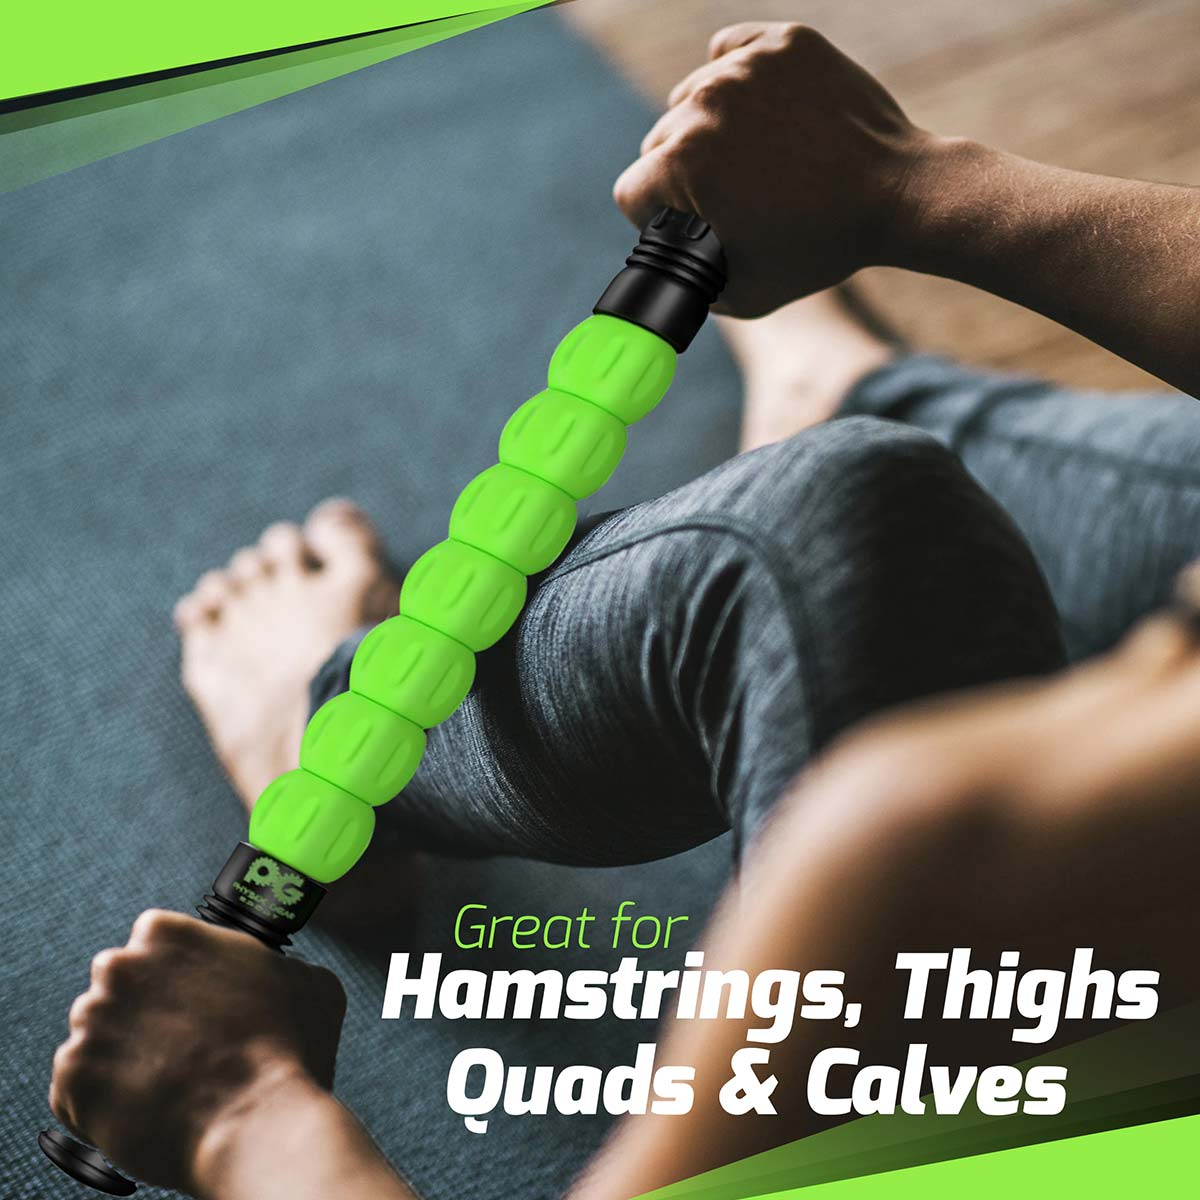 Massage Sticks - Green (1 Pack + eGuide)-Physix Gear Sport